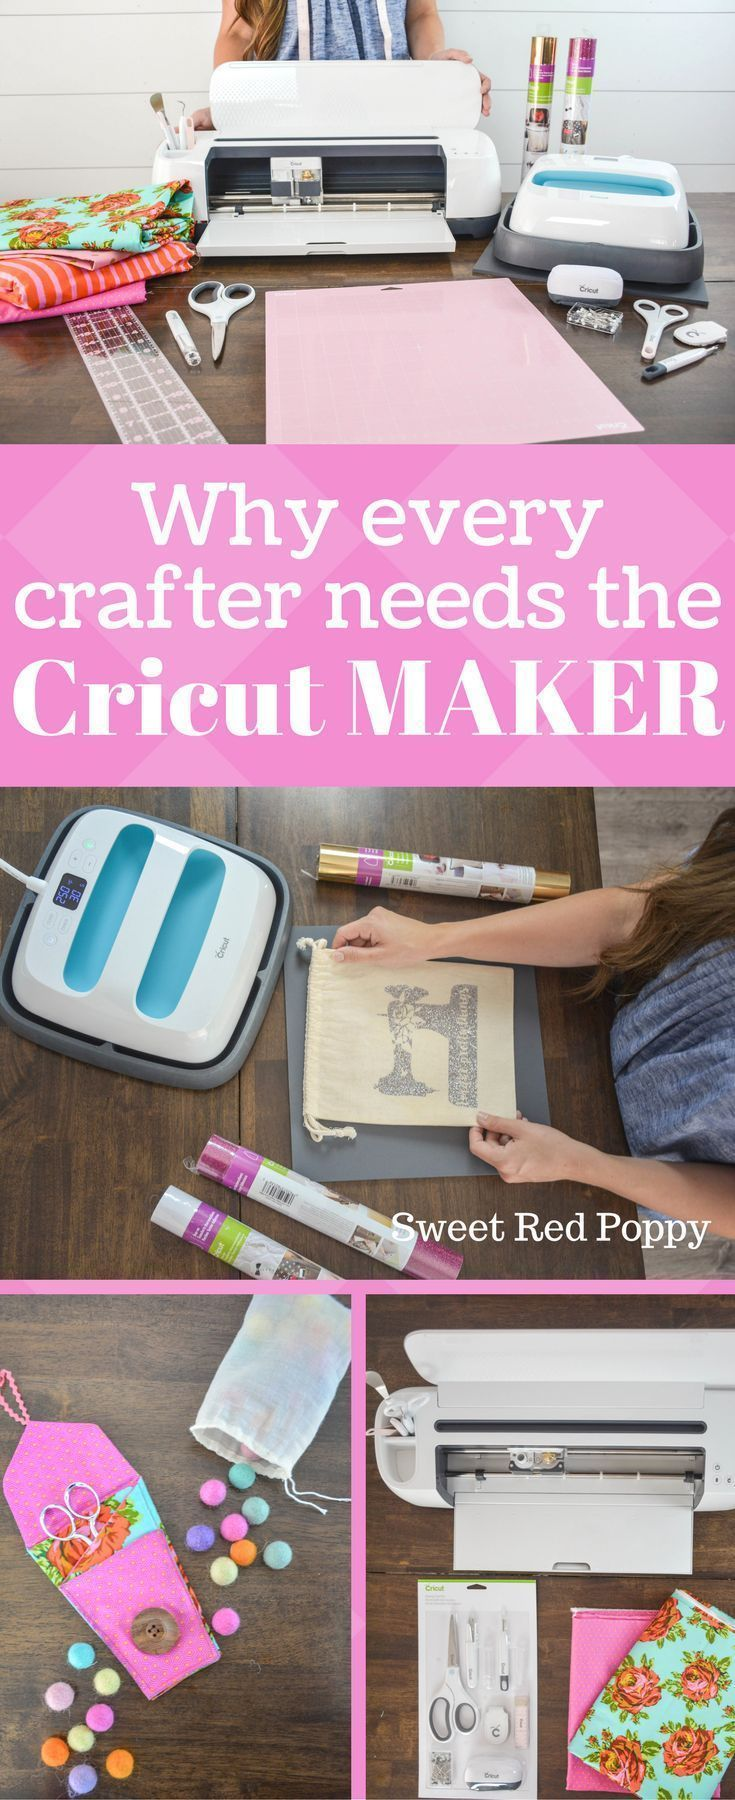 47 Best Cricut Maker Images On Pinterest Craft Explore Air Ironon Obsess Technolog Devic Project Circuit Idea The All New Cutting Machine Features A Rotary Blade To Cut Fabric